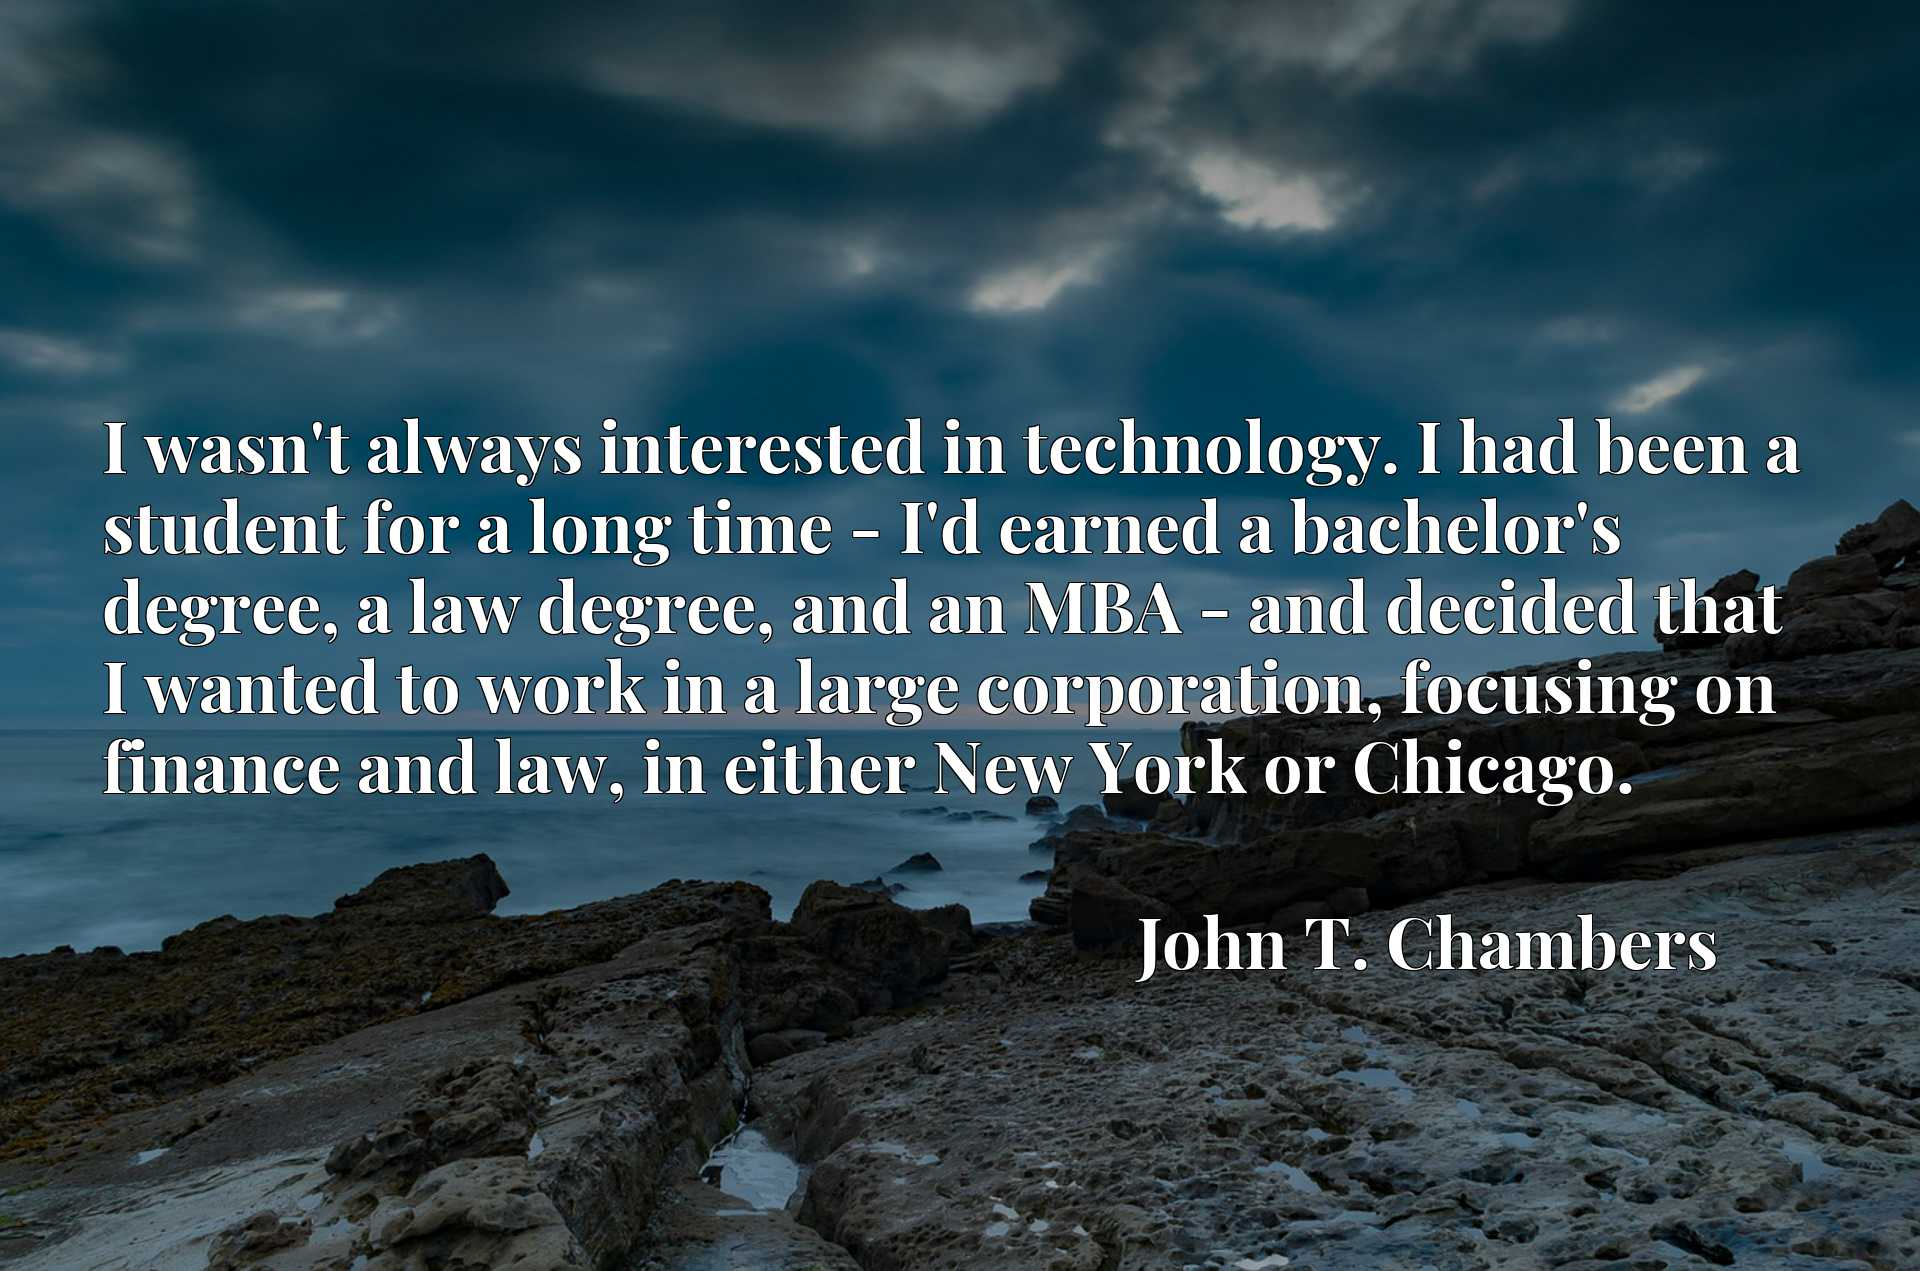 I wasn't always interested in technology. I had been a student for a long time - I'd earned a bachelor's degree, a law degree, and an MBA - and decided that I wanted to work in a large corporation, focusing on finance and law, in either New York or Chicago.